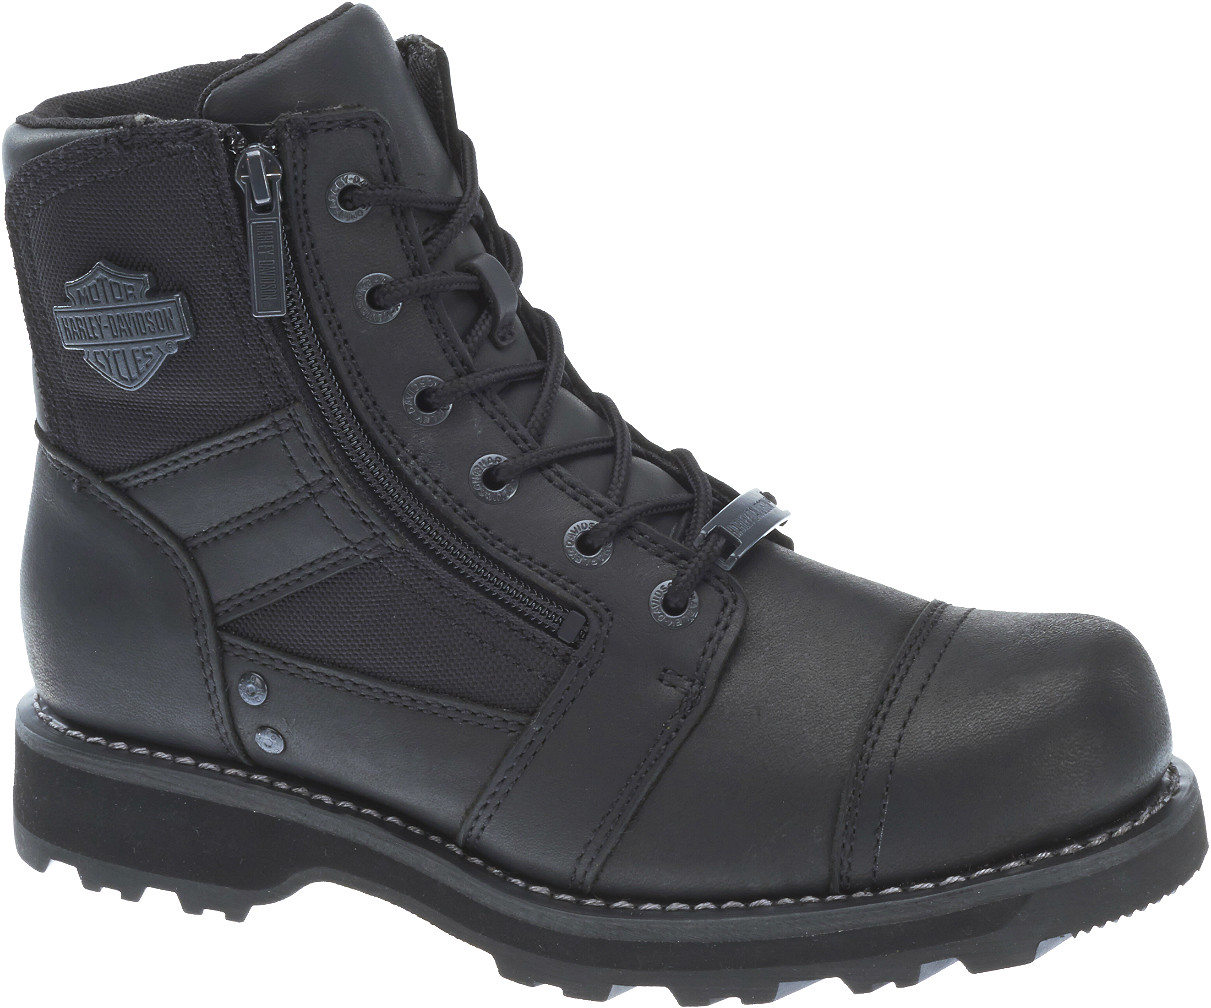 HARLEY-DAVIDSON® FOOTWEAR Men's Bonham Motorcycle Riding Boots | Quality Ventilation